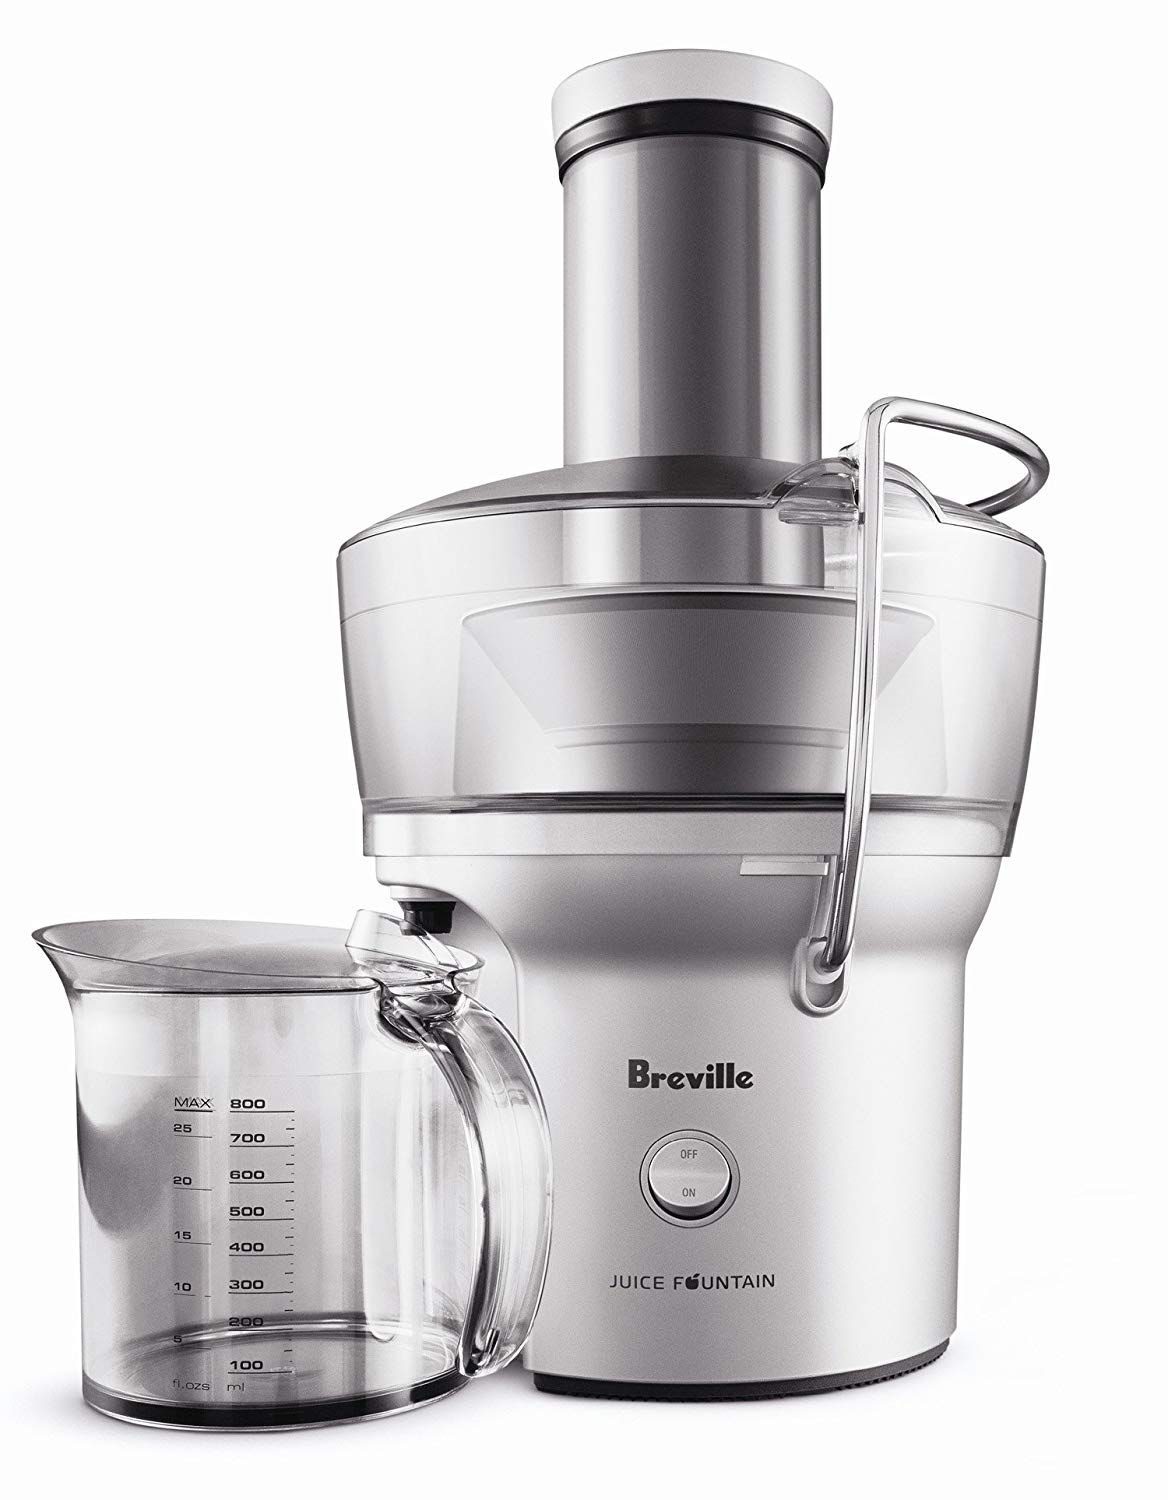 Breville Compact Juice Fountainの画像